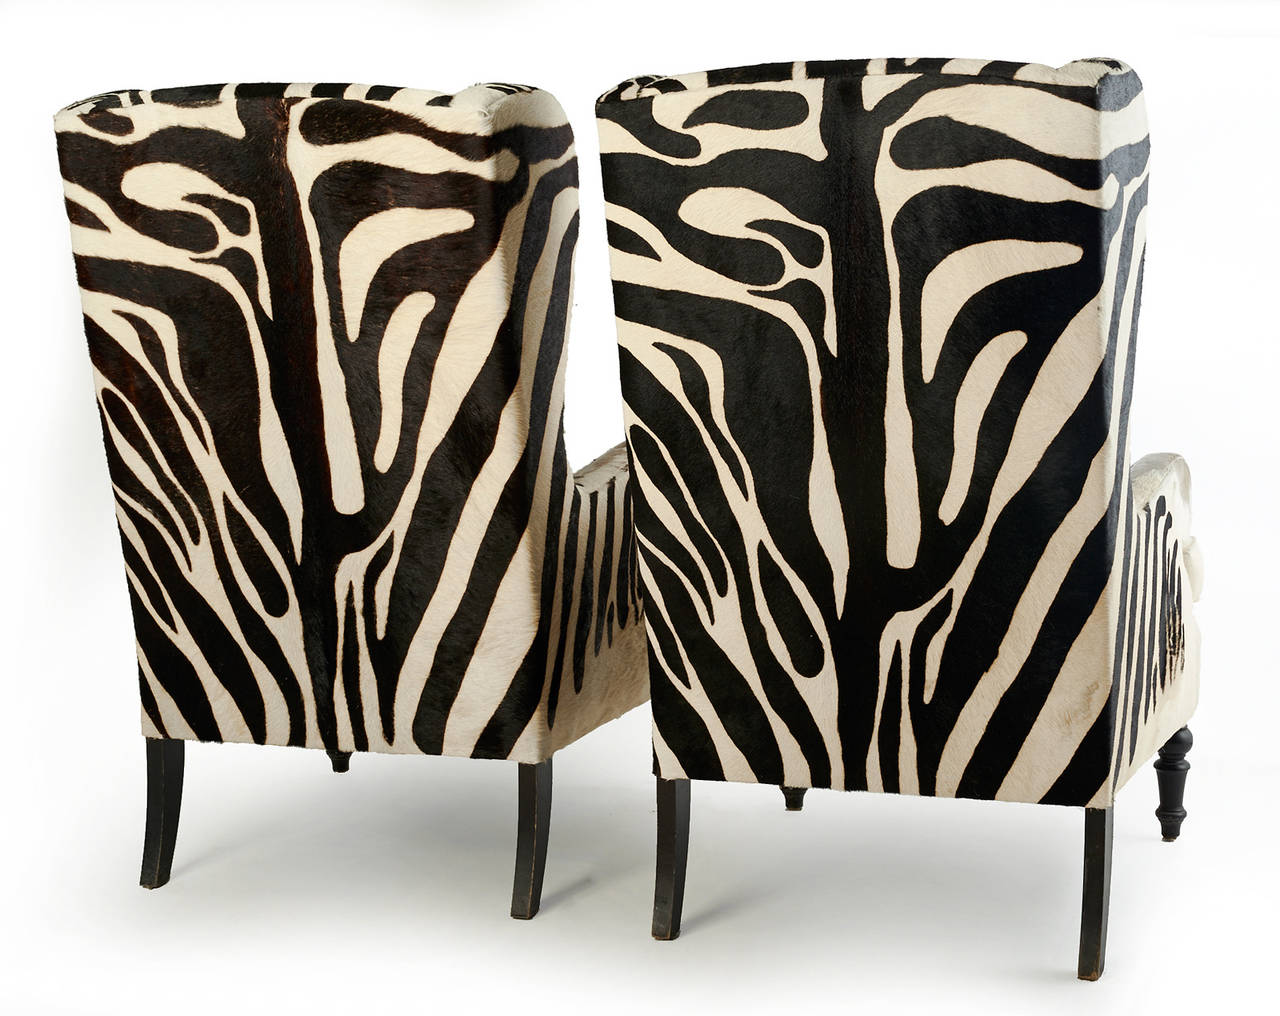 20th Century Faux Zebra Wingback Chairs At 1stdibs